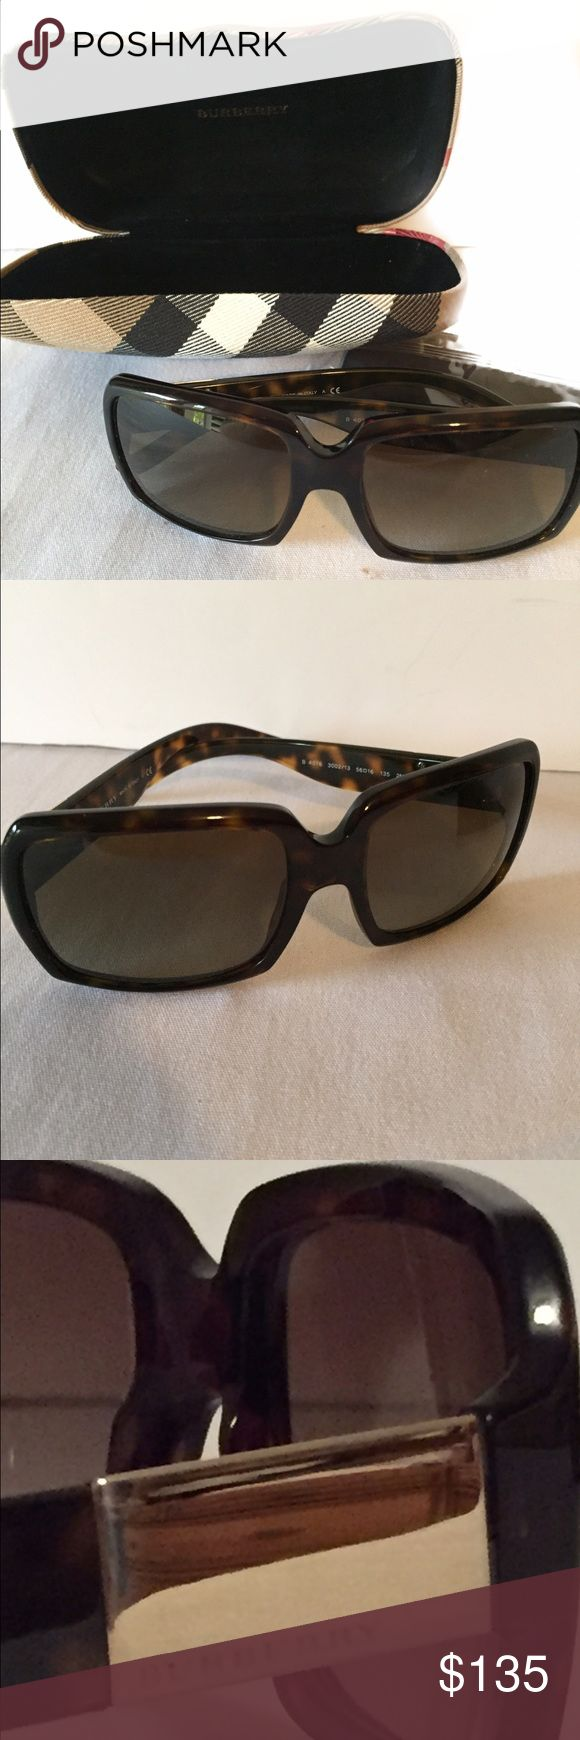 Tortoise color Burberry Sunglasses NWOT New with case, Tortoise color on the arms, a little darker around the frames. Dust cloth included. THEY ARE NEW BUT DO NOT HAVE TAGS! burberry Accessories Sunglasses